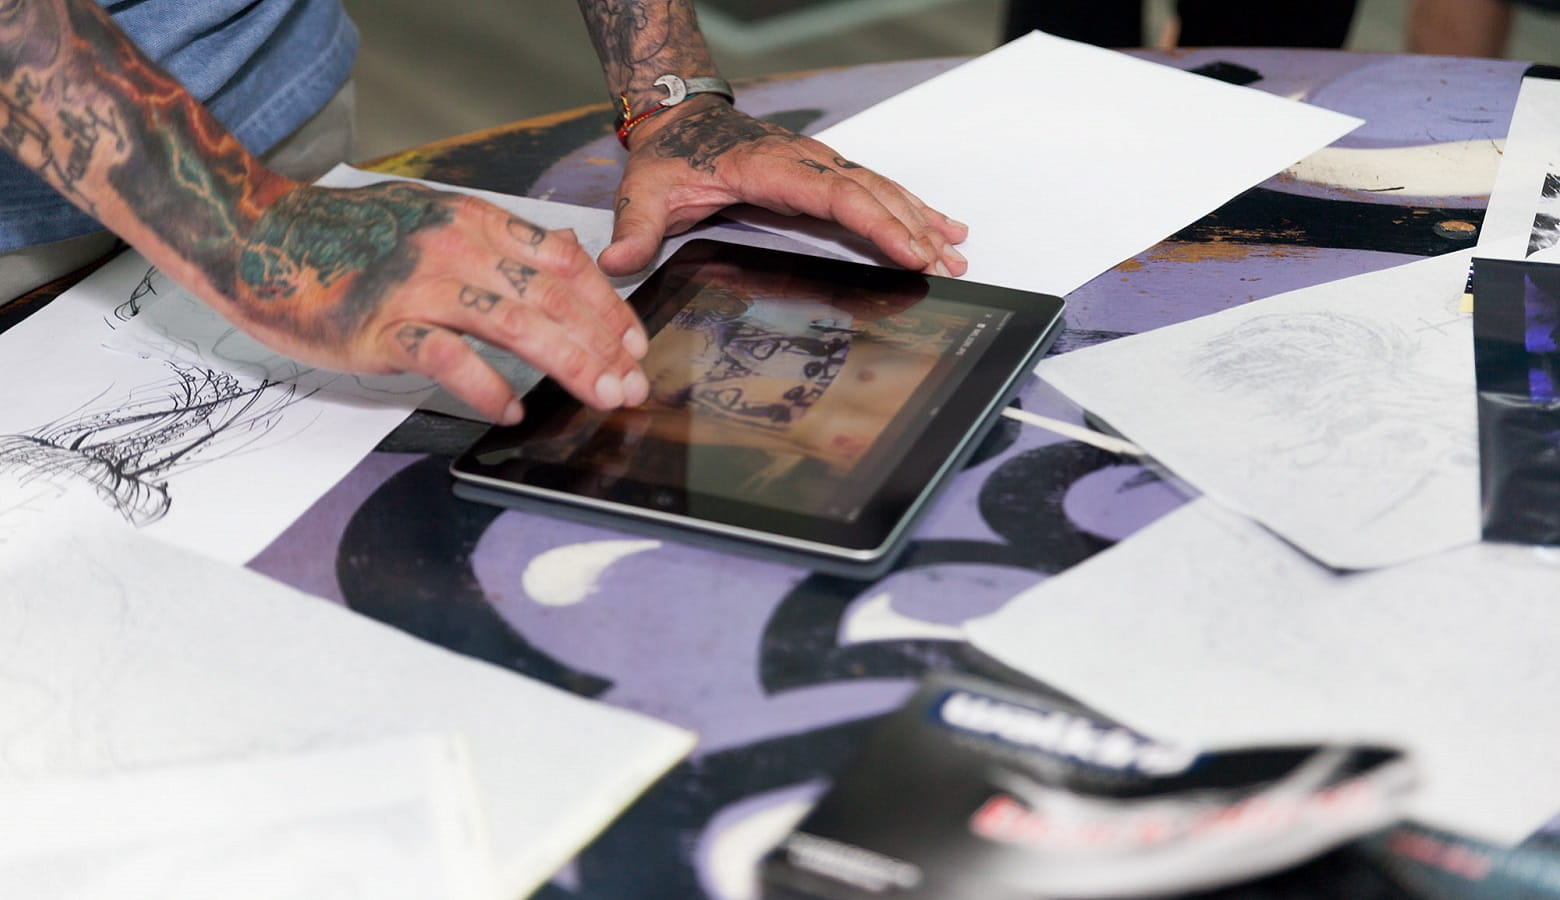 Tatuatore disegna su tablet